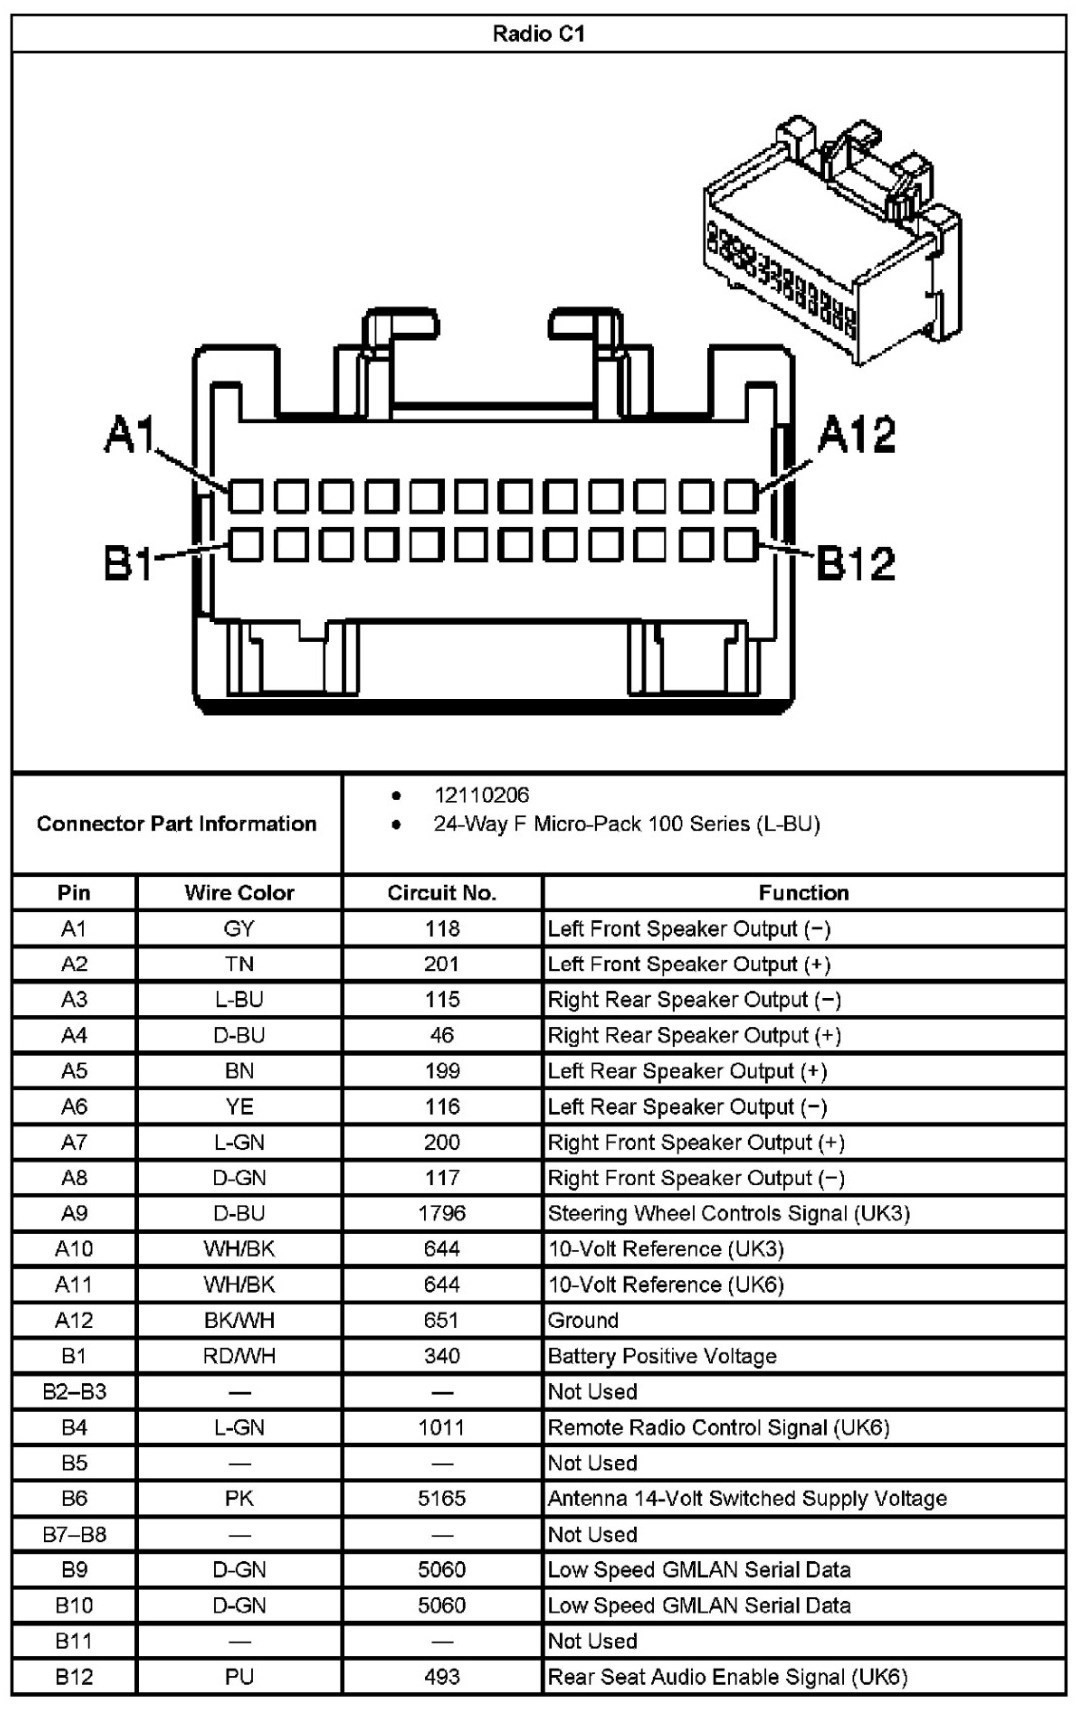 DIAGRAM] 2008 Silverado Bose Stereo Wiring Diagram FULL Version HD Quality Wiring  Diagram - FORDDIAGRAM.DSIMOLA.IT  Dsimola.it